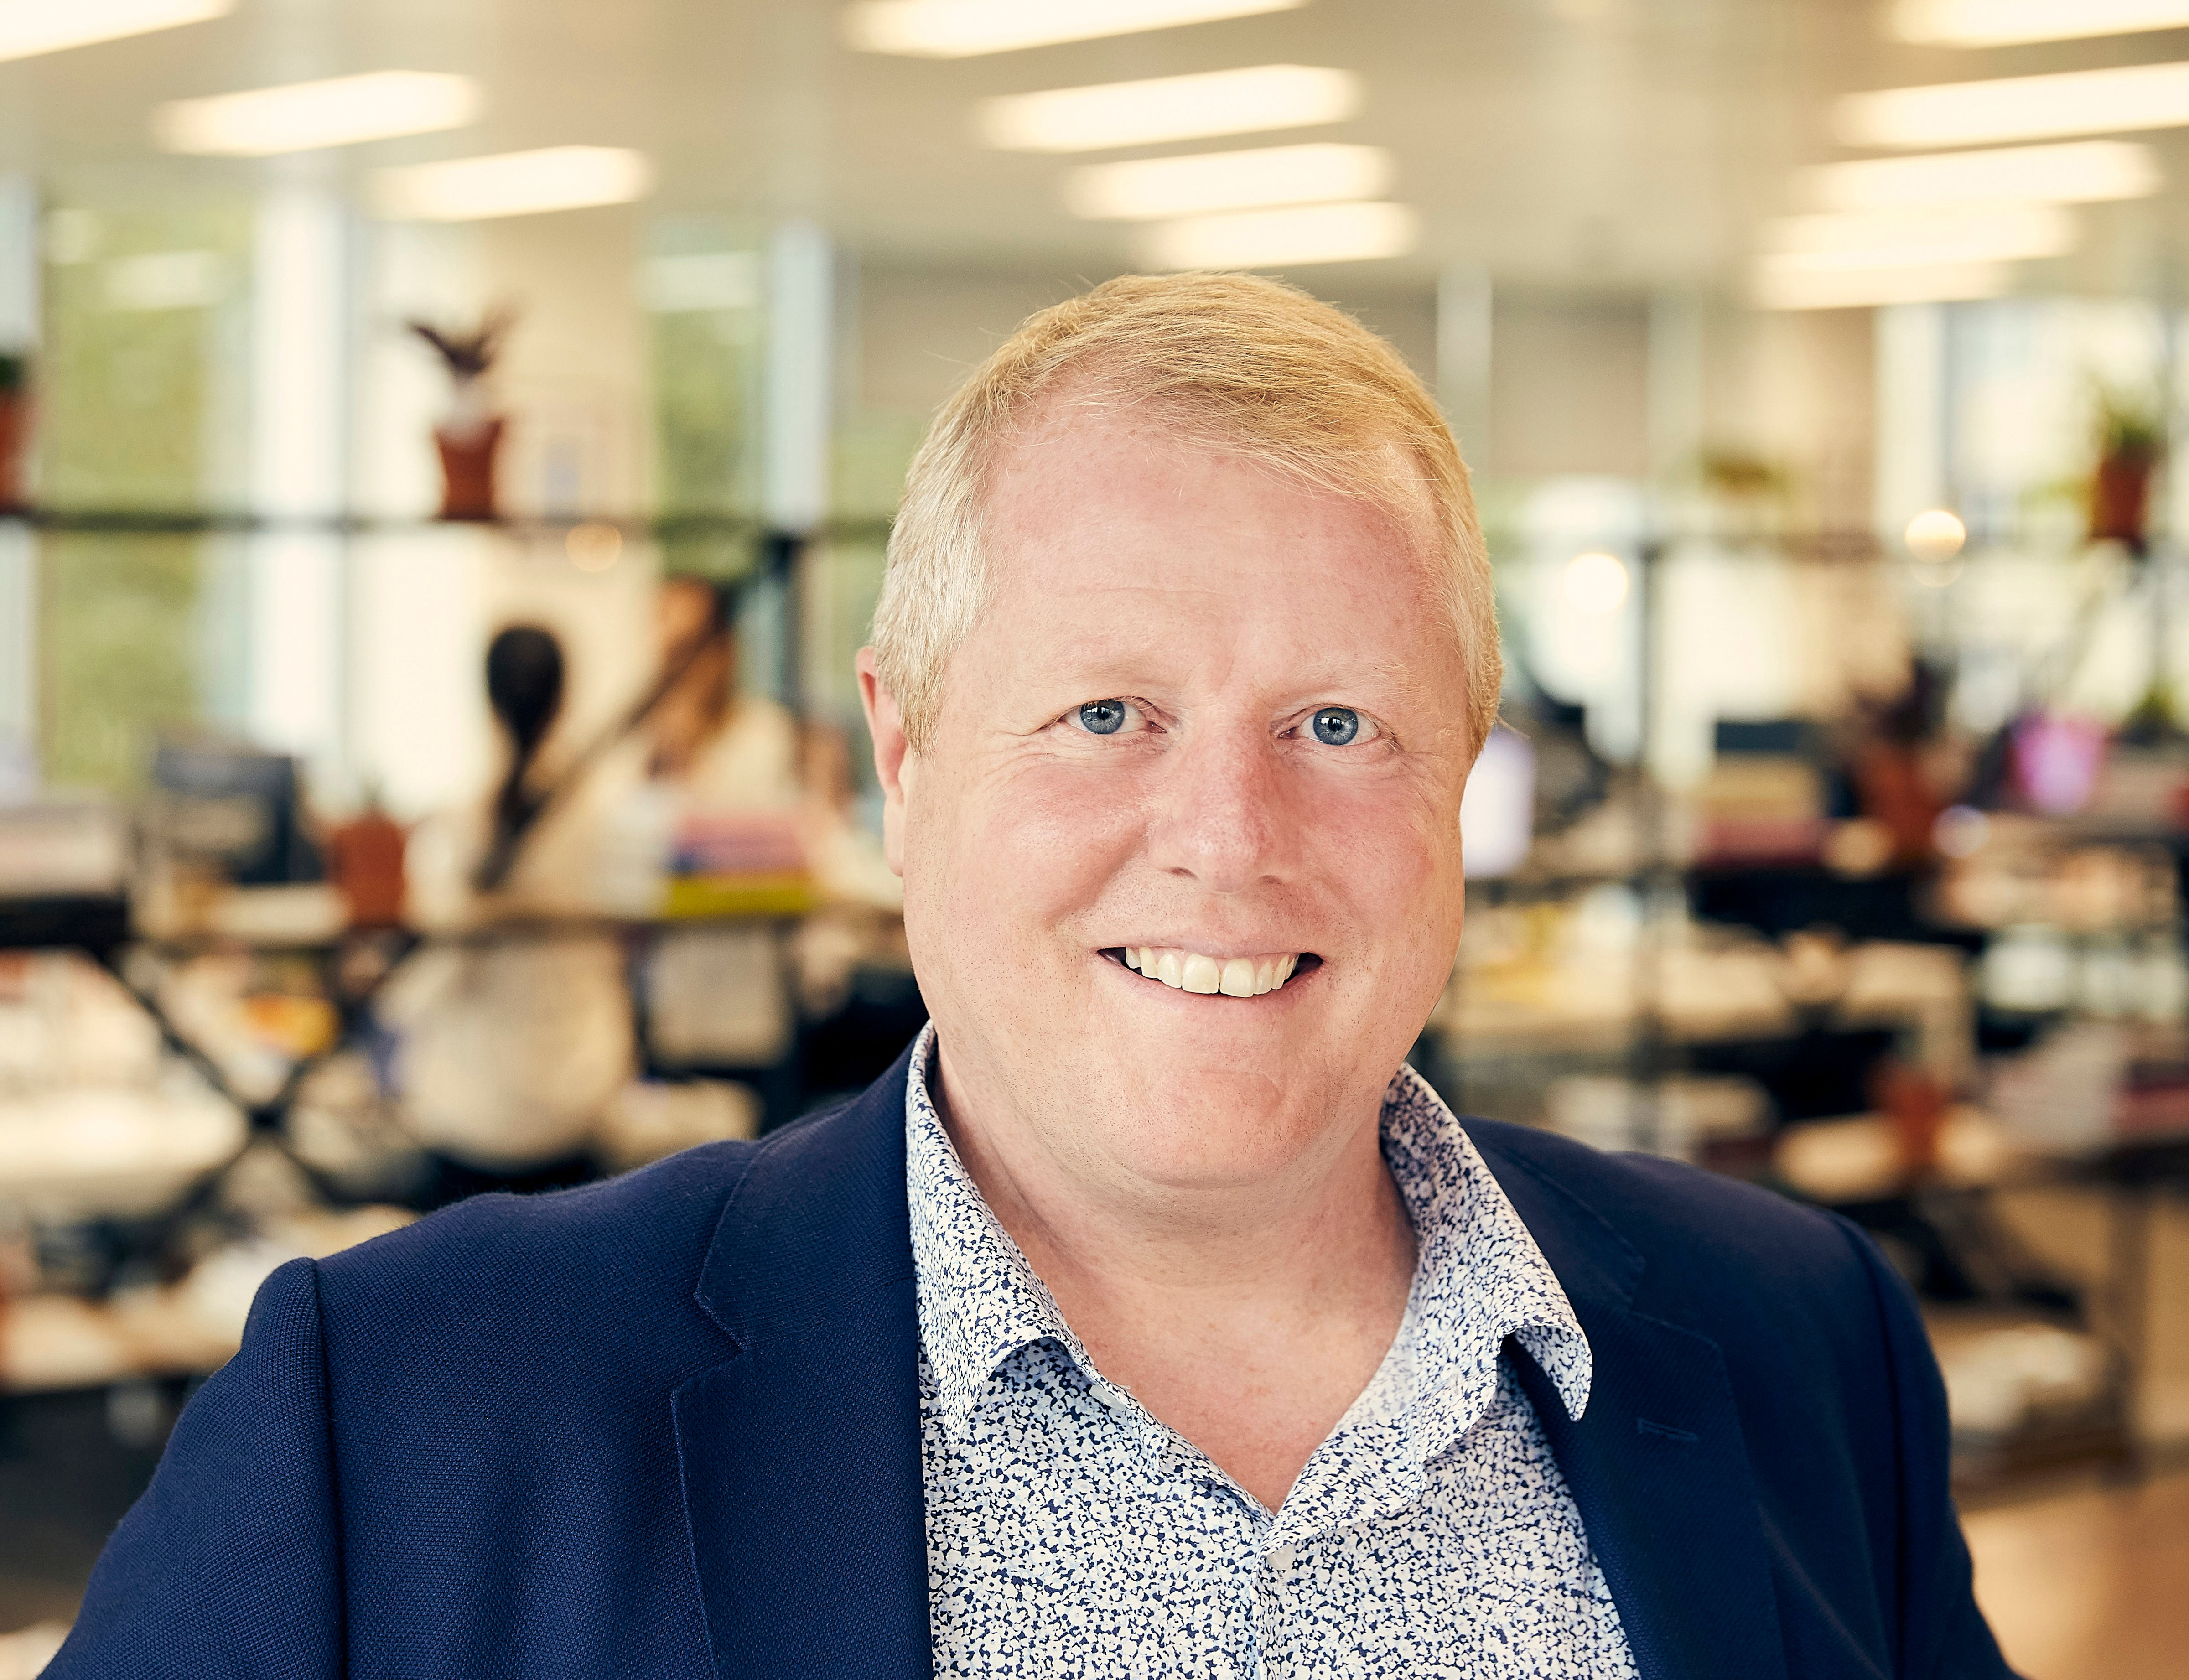 Matthew Platts, Chief Commercial Officer, Dentsu Aegis Network, UK and Ireland